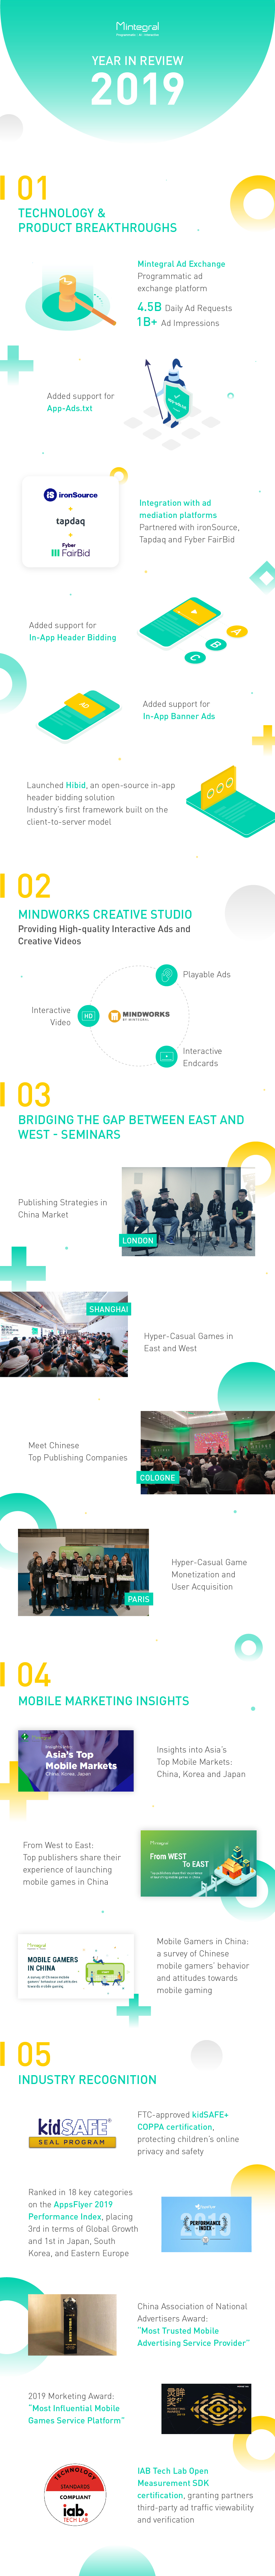 Mintegral 2019 review infographic